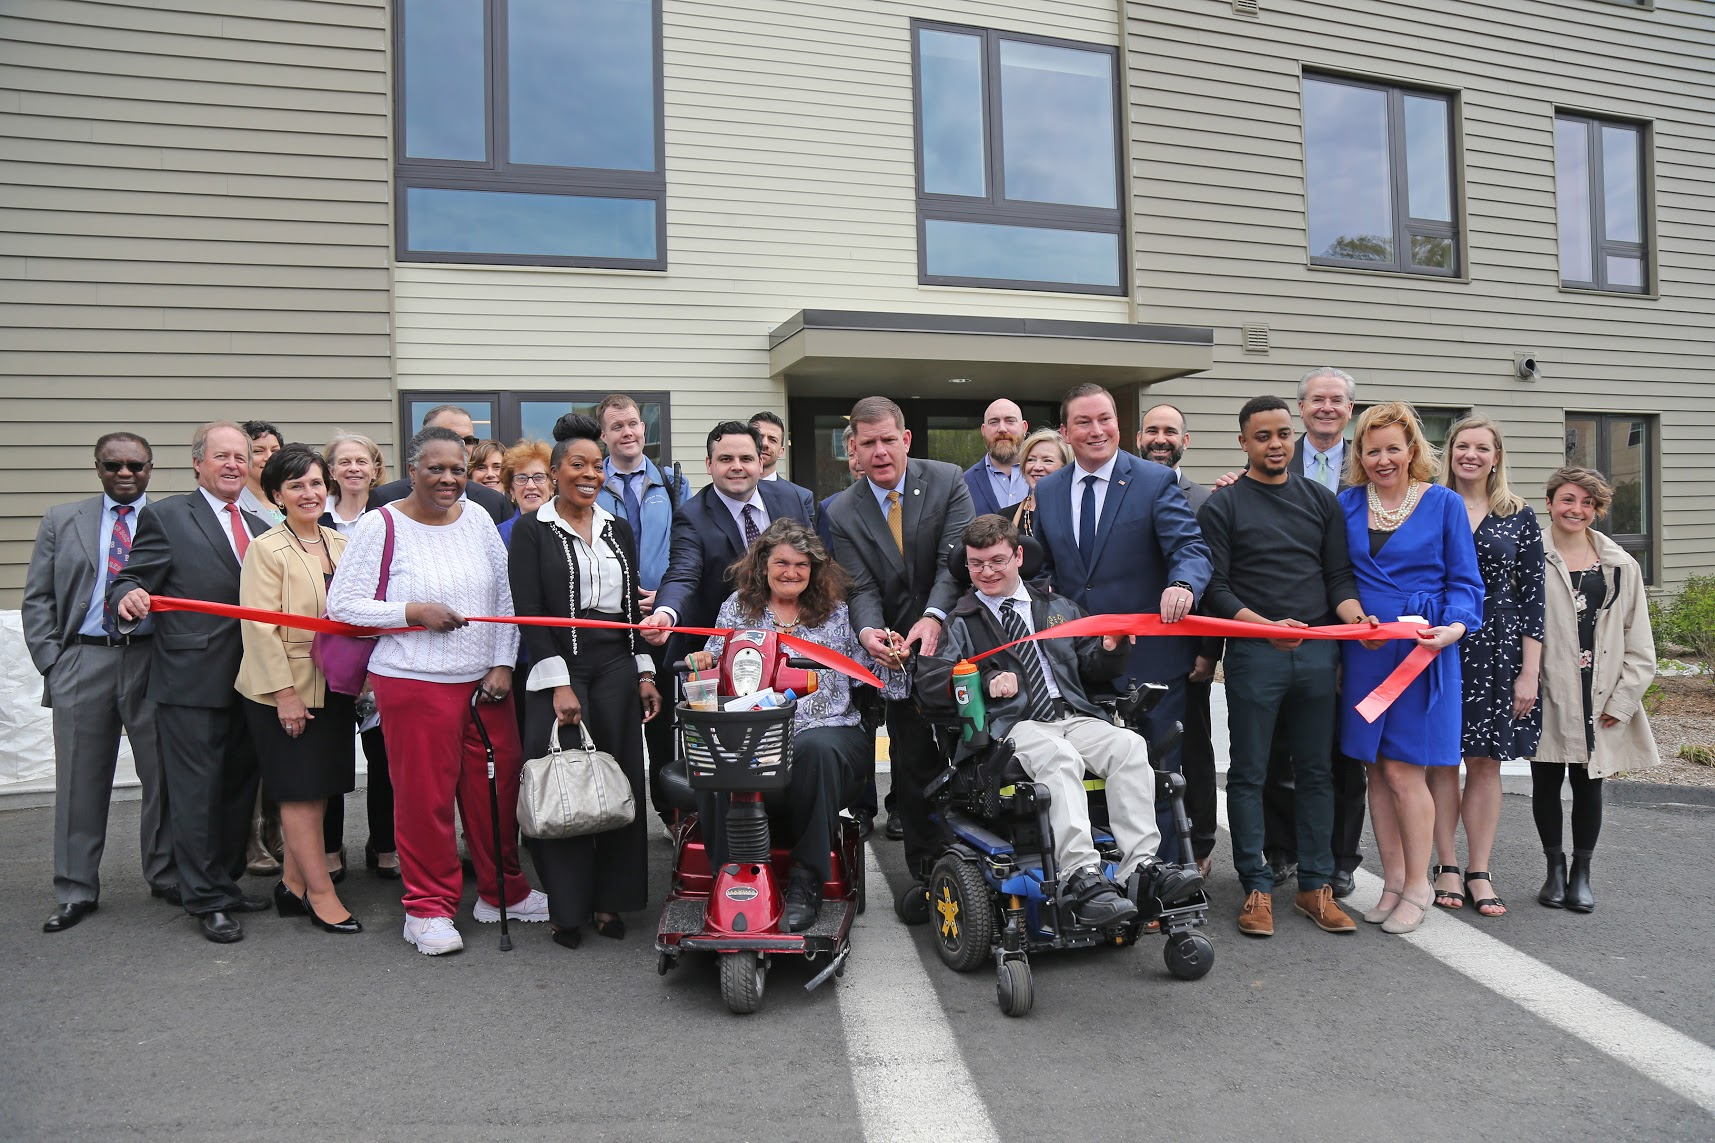 Harmon Apartments Ribbon Cutting Celebration